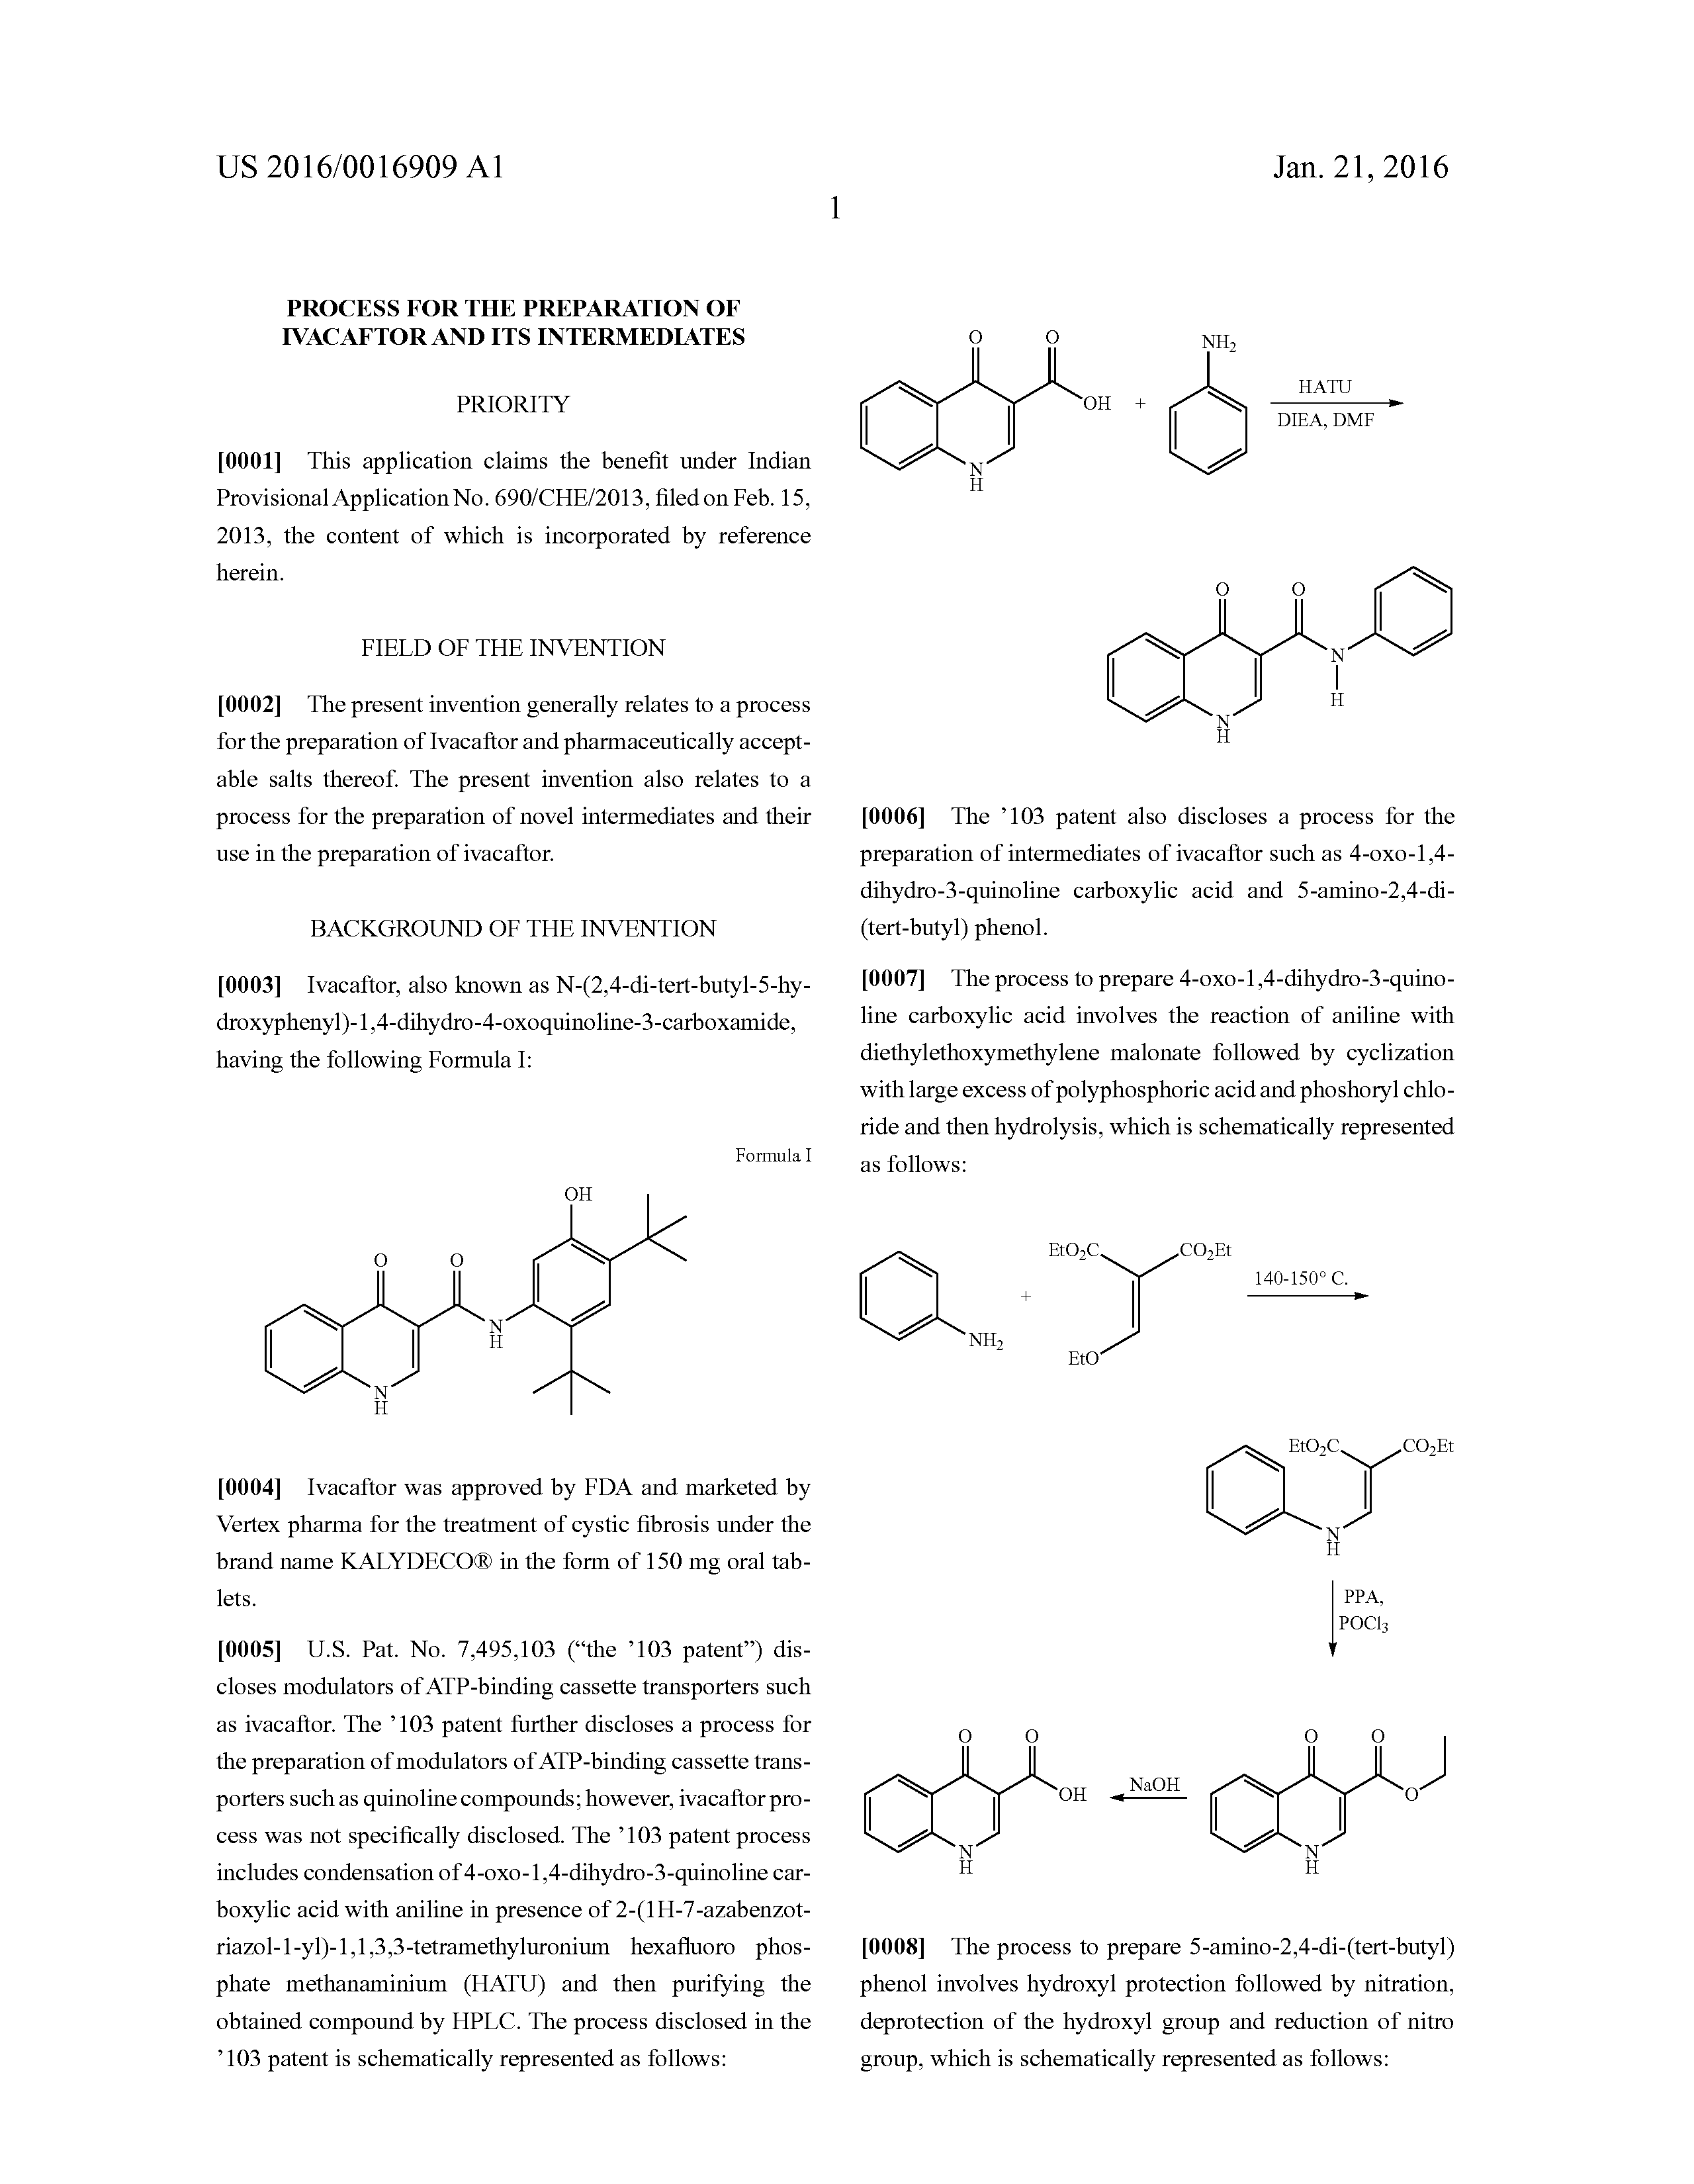 US 2016/0016909 A1 - Process For The Preparation Of Ivacaftor And